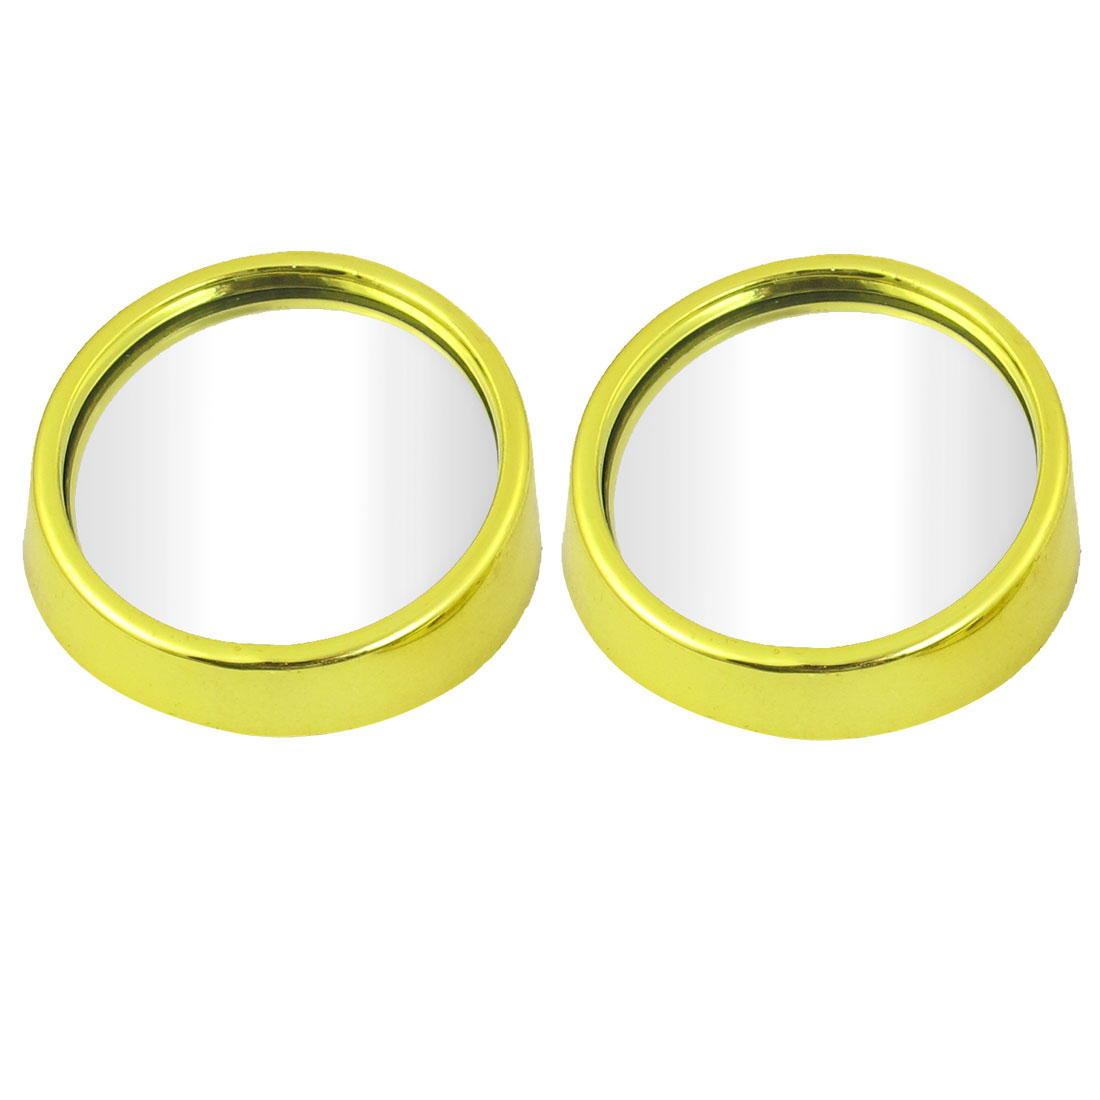 54mmx18mm Gold Tone Wide Angle Round Rearview Blind Spot Mirror 2 Pcs